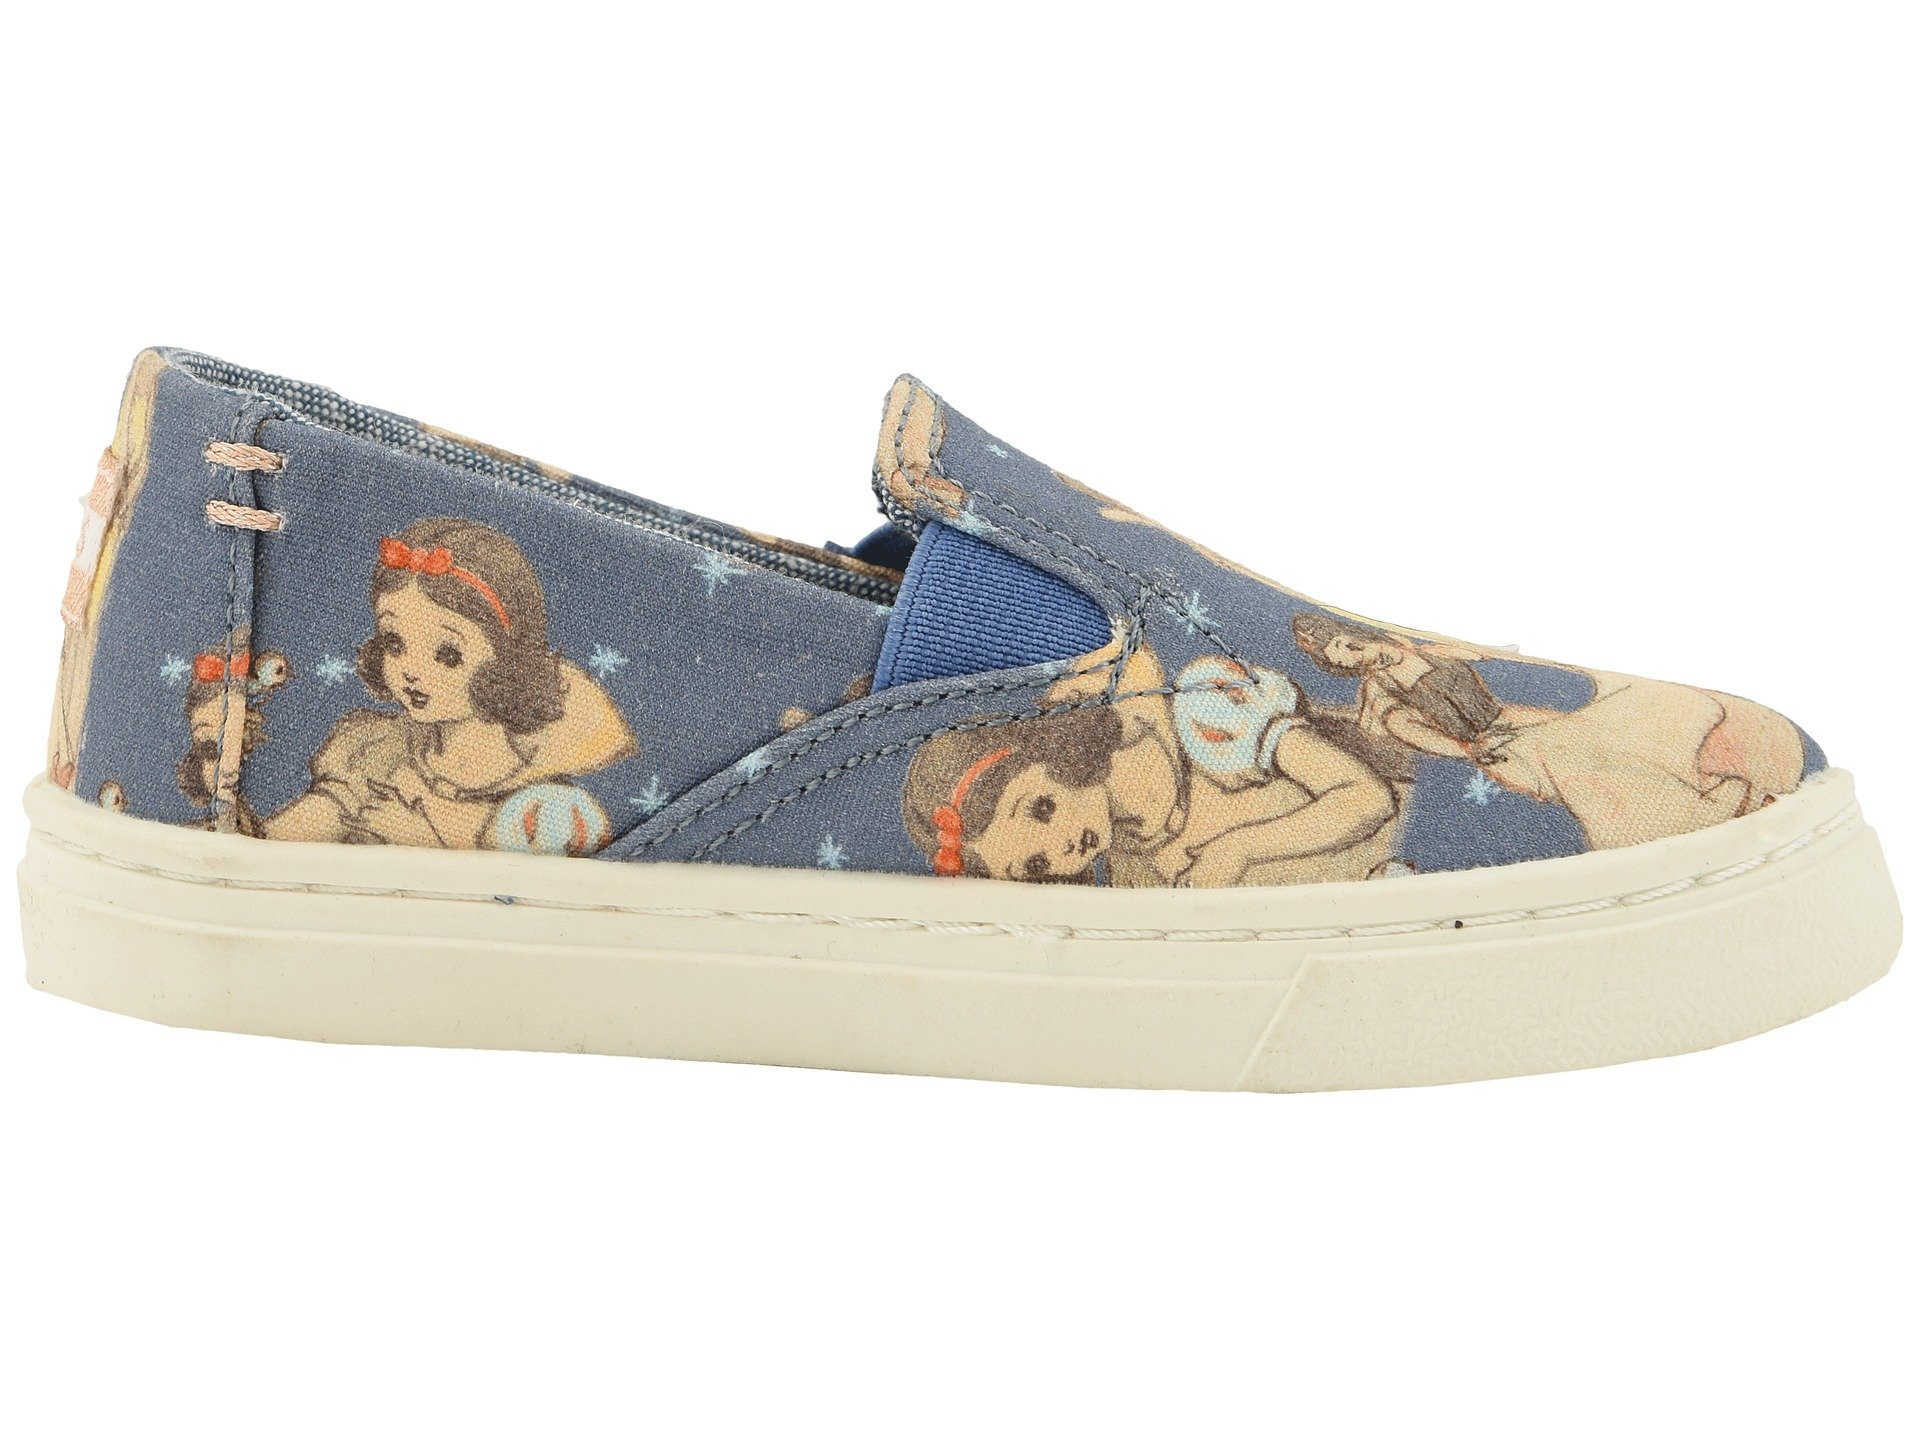 TOMS Girl's, Luca Slip on Shoes Blue 4 M by TOMS Kids (Image #8)